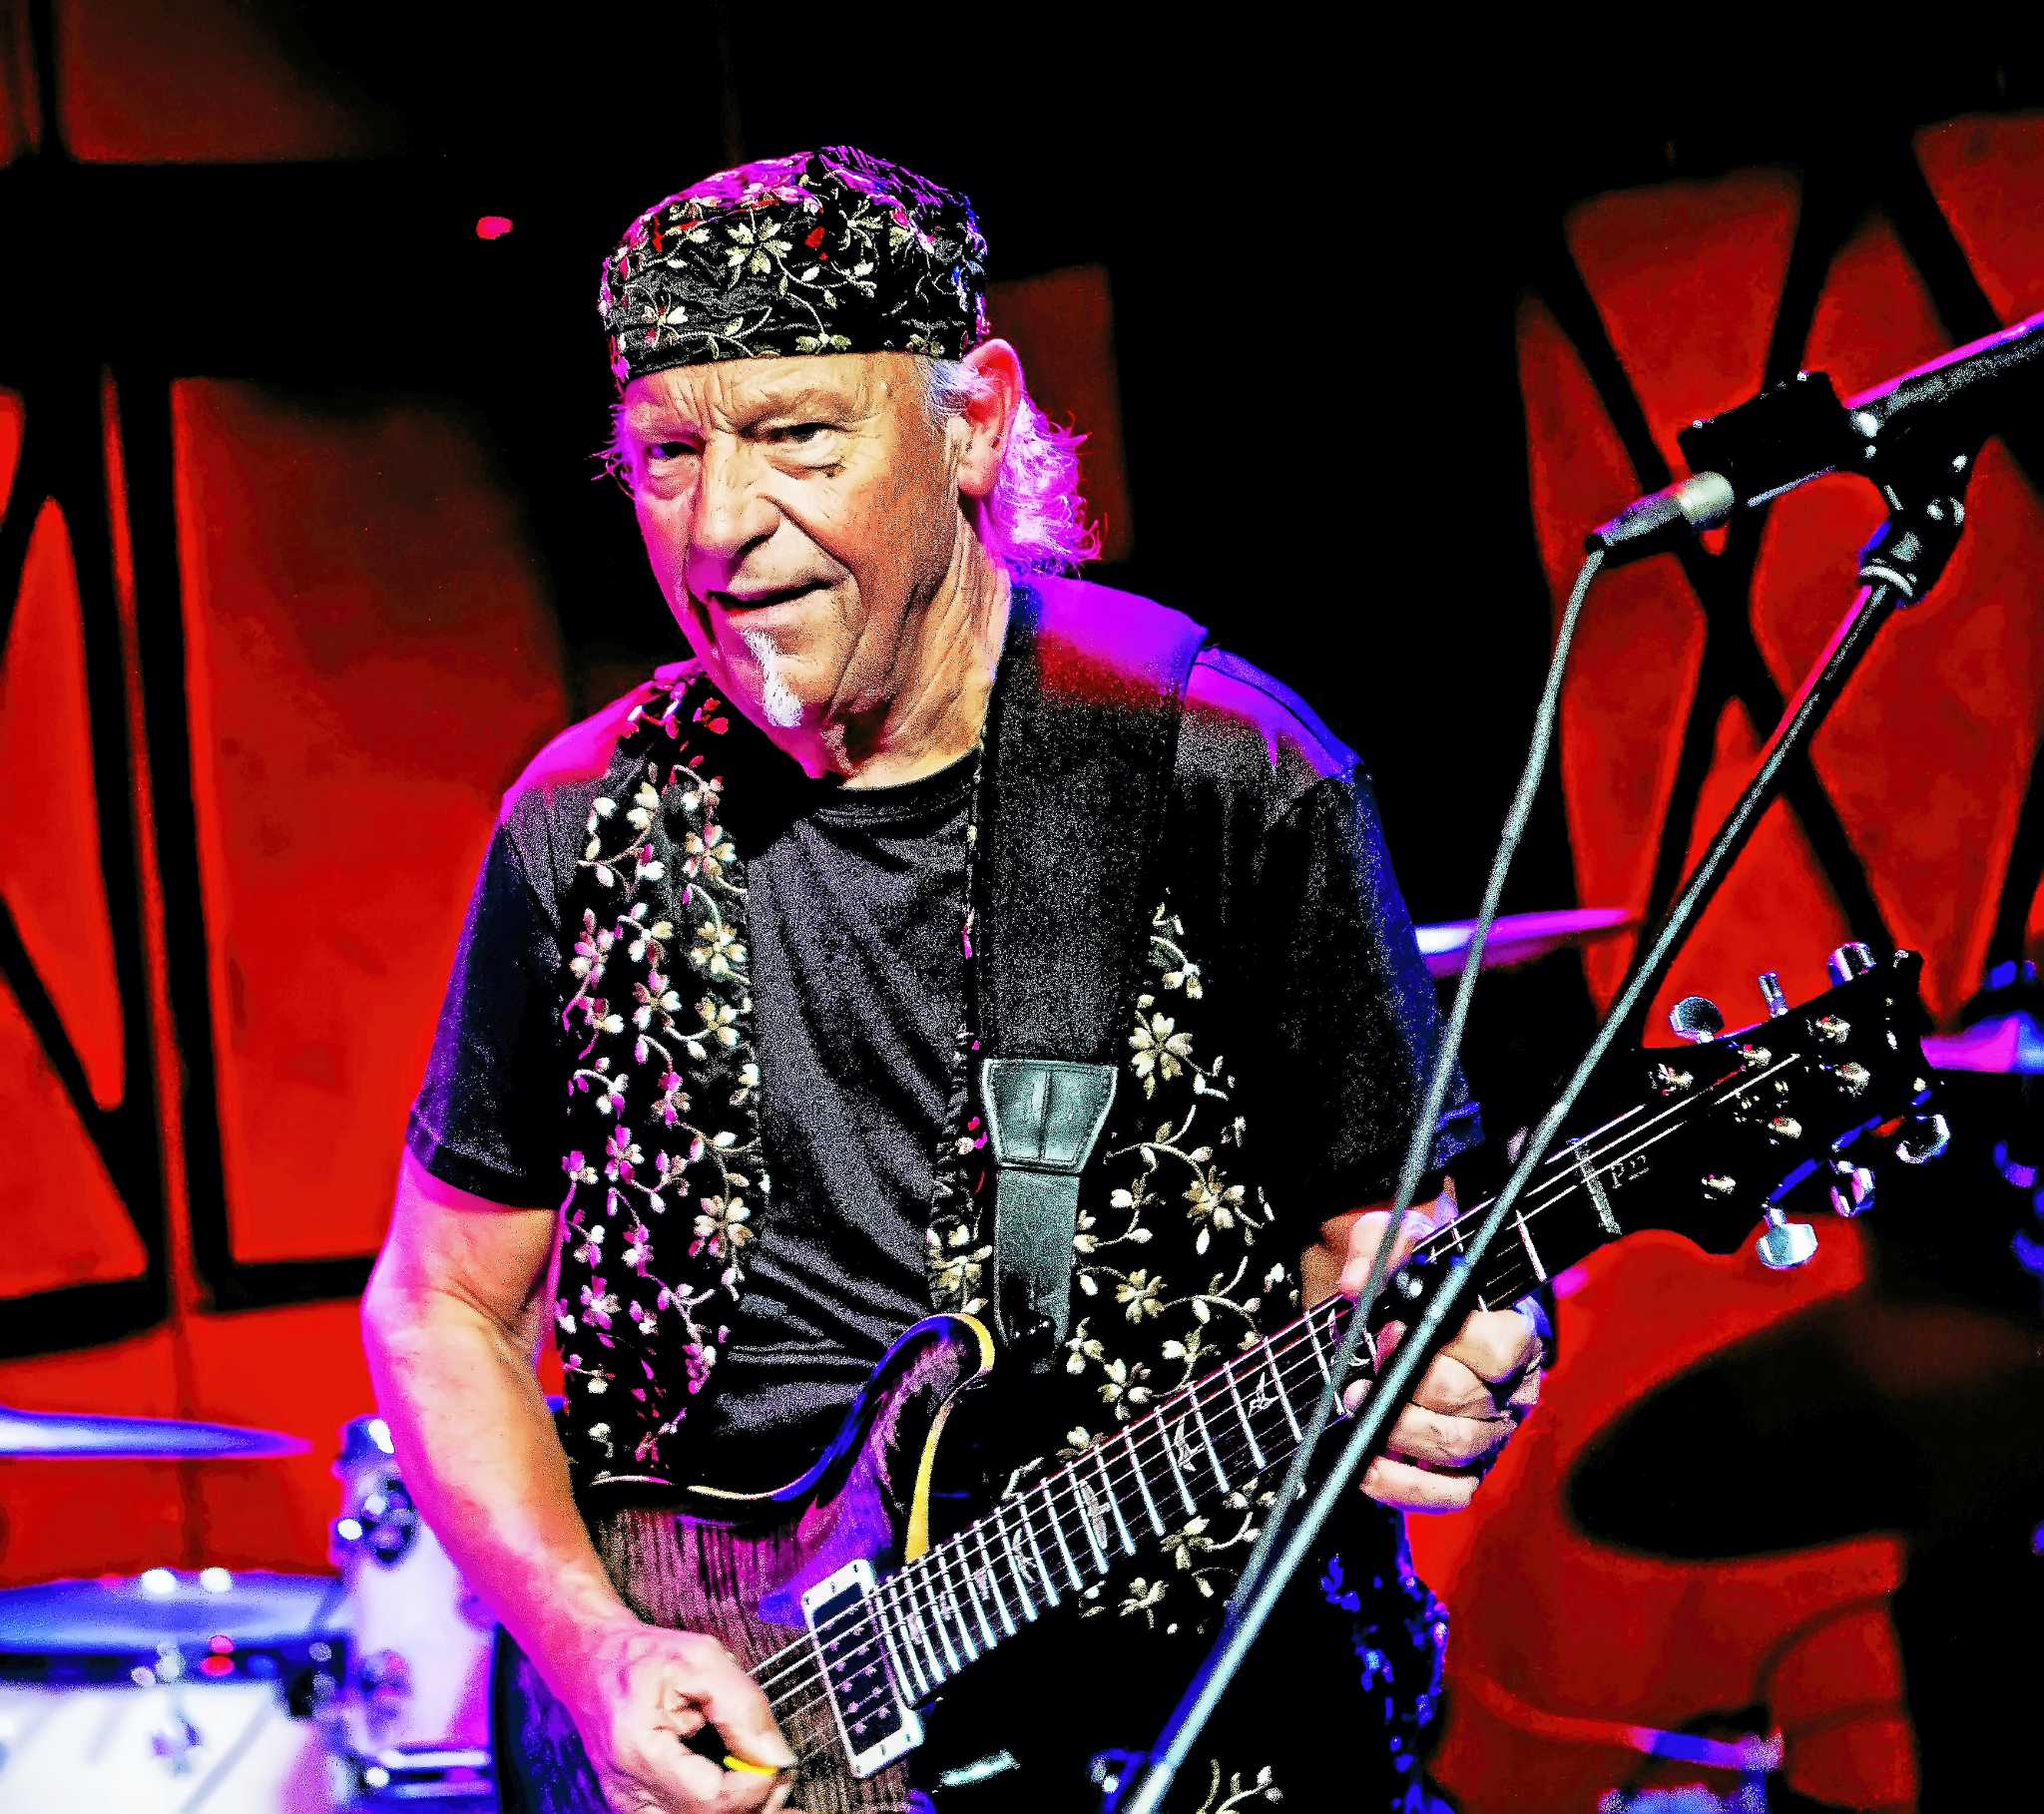 jethro tull guitarist martin barre bringing his band to the kate the middletown press. Black Bedroom Furniture Sets. Home Design Ideas